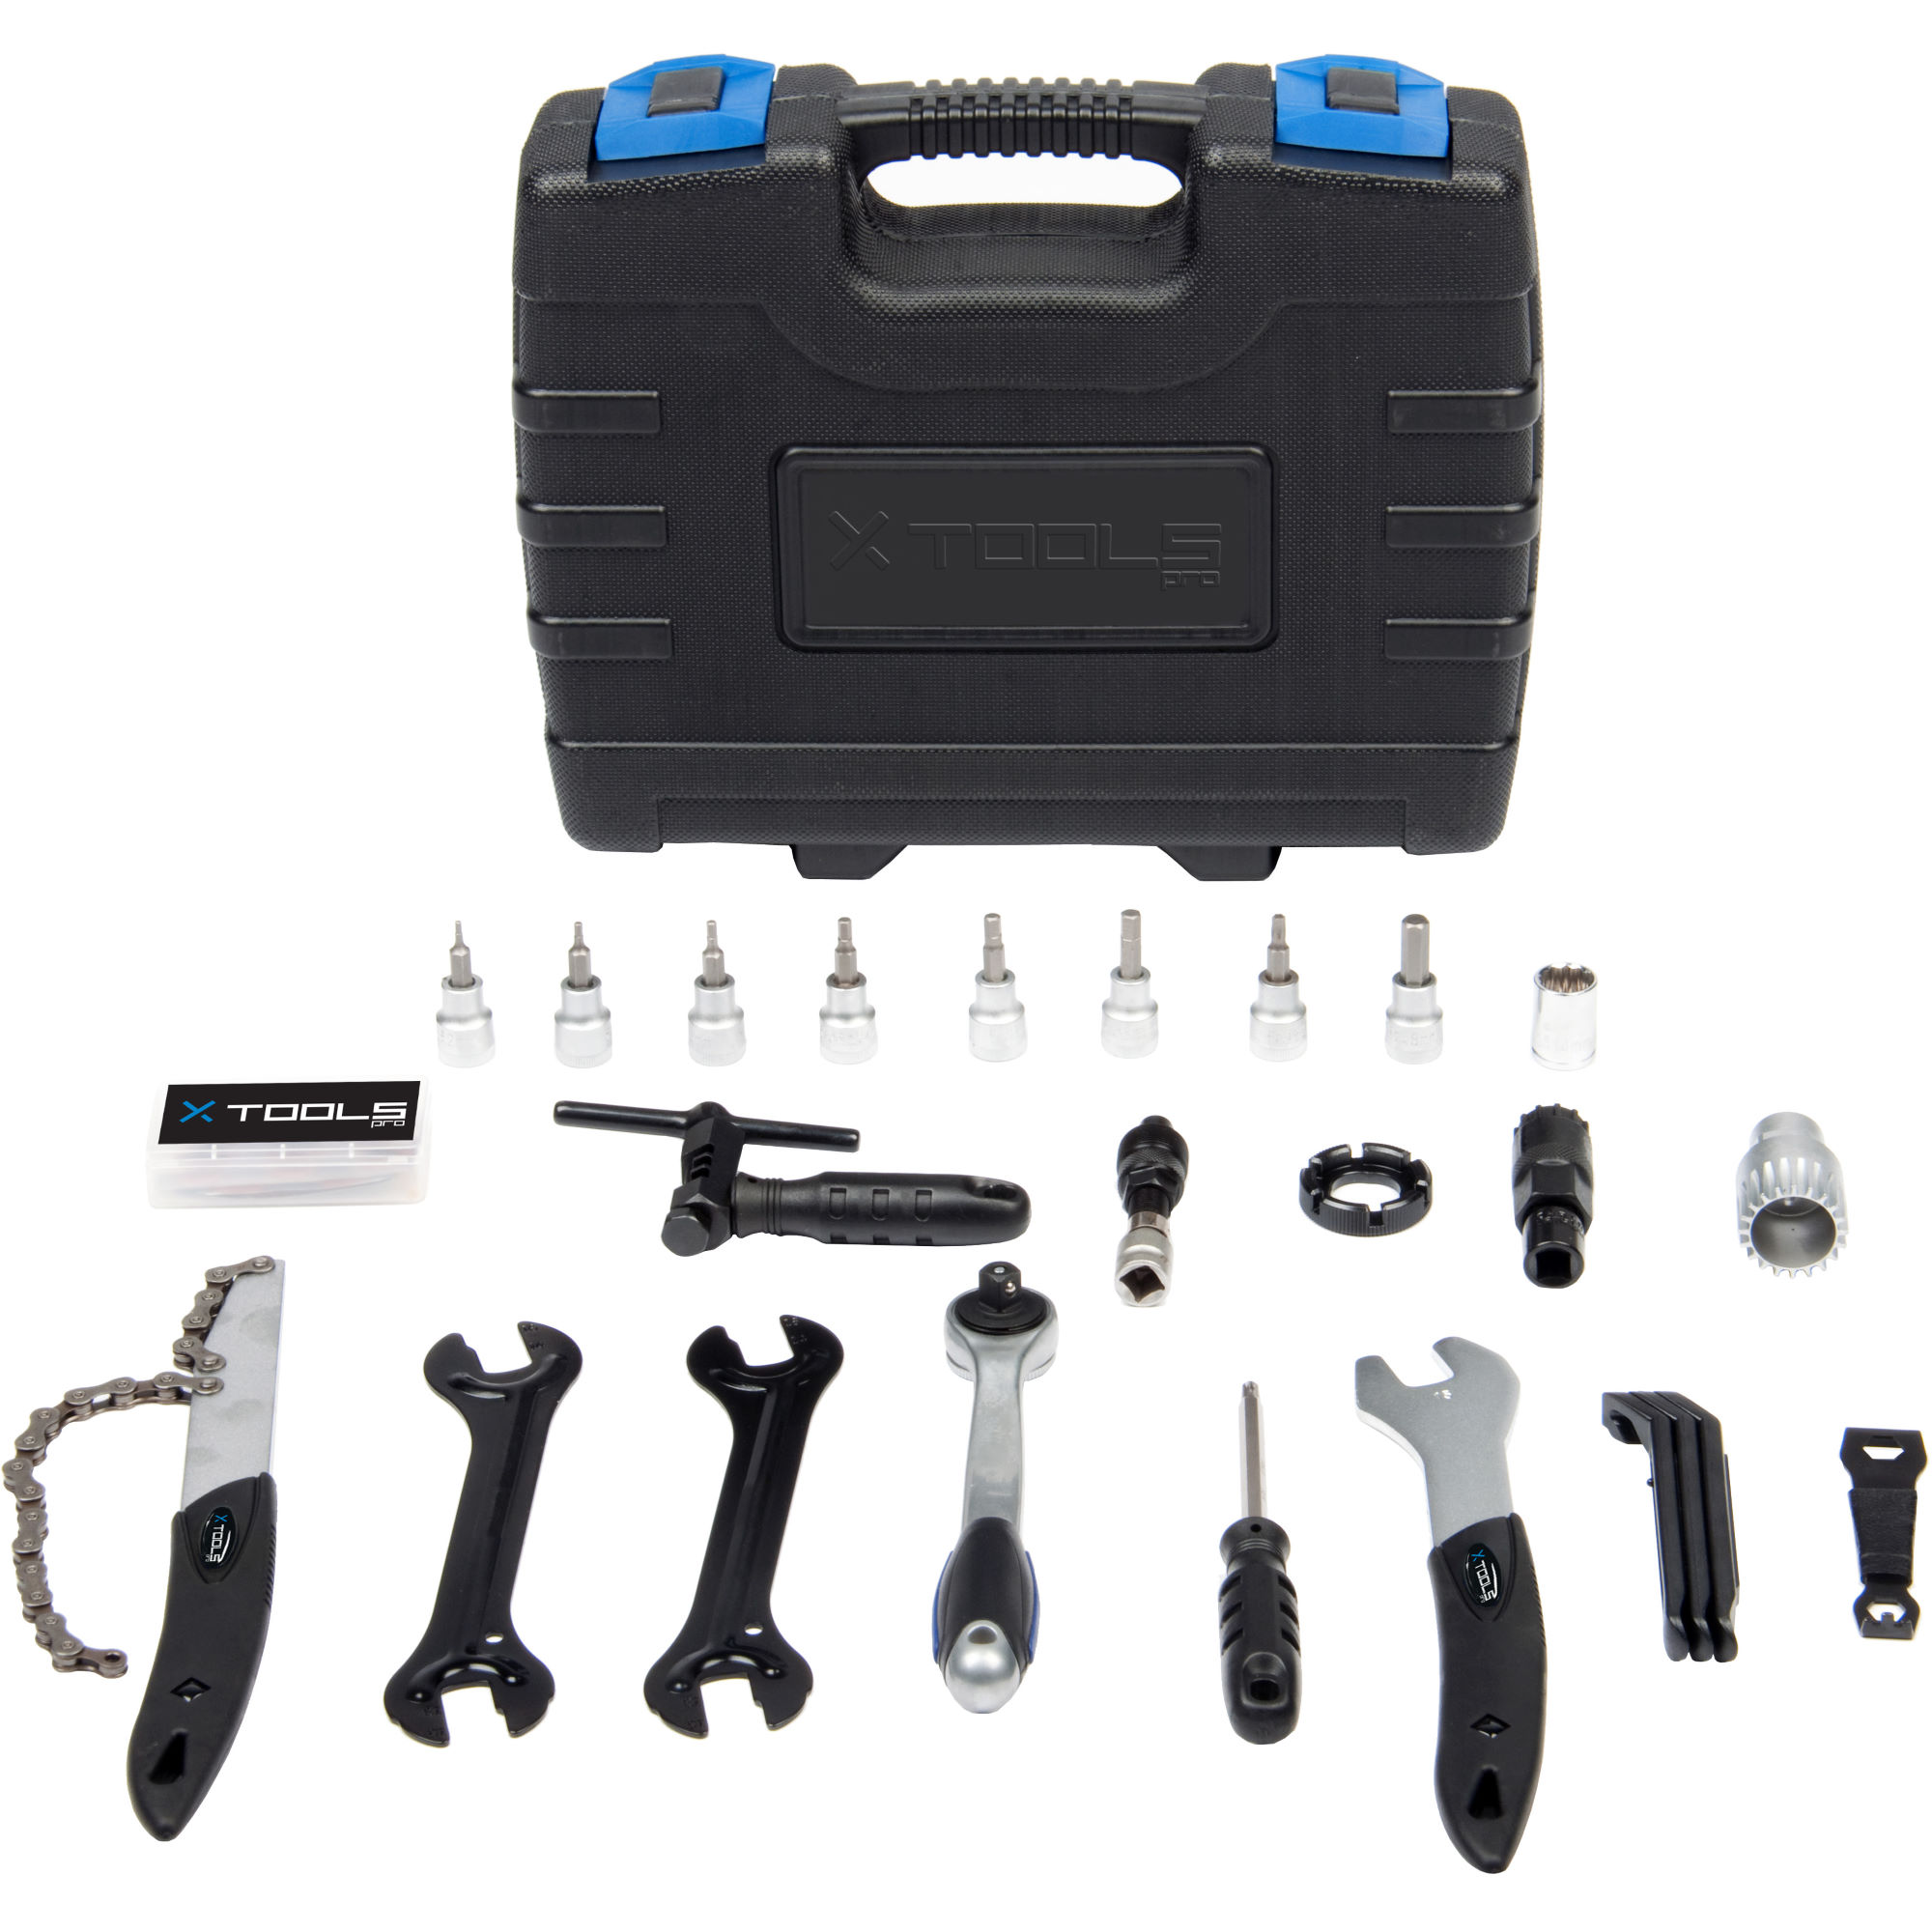 Outillage x tools bike tool kit 27 piece one size wiggle france - Boite a outils velo ...